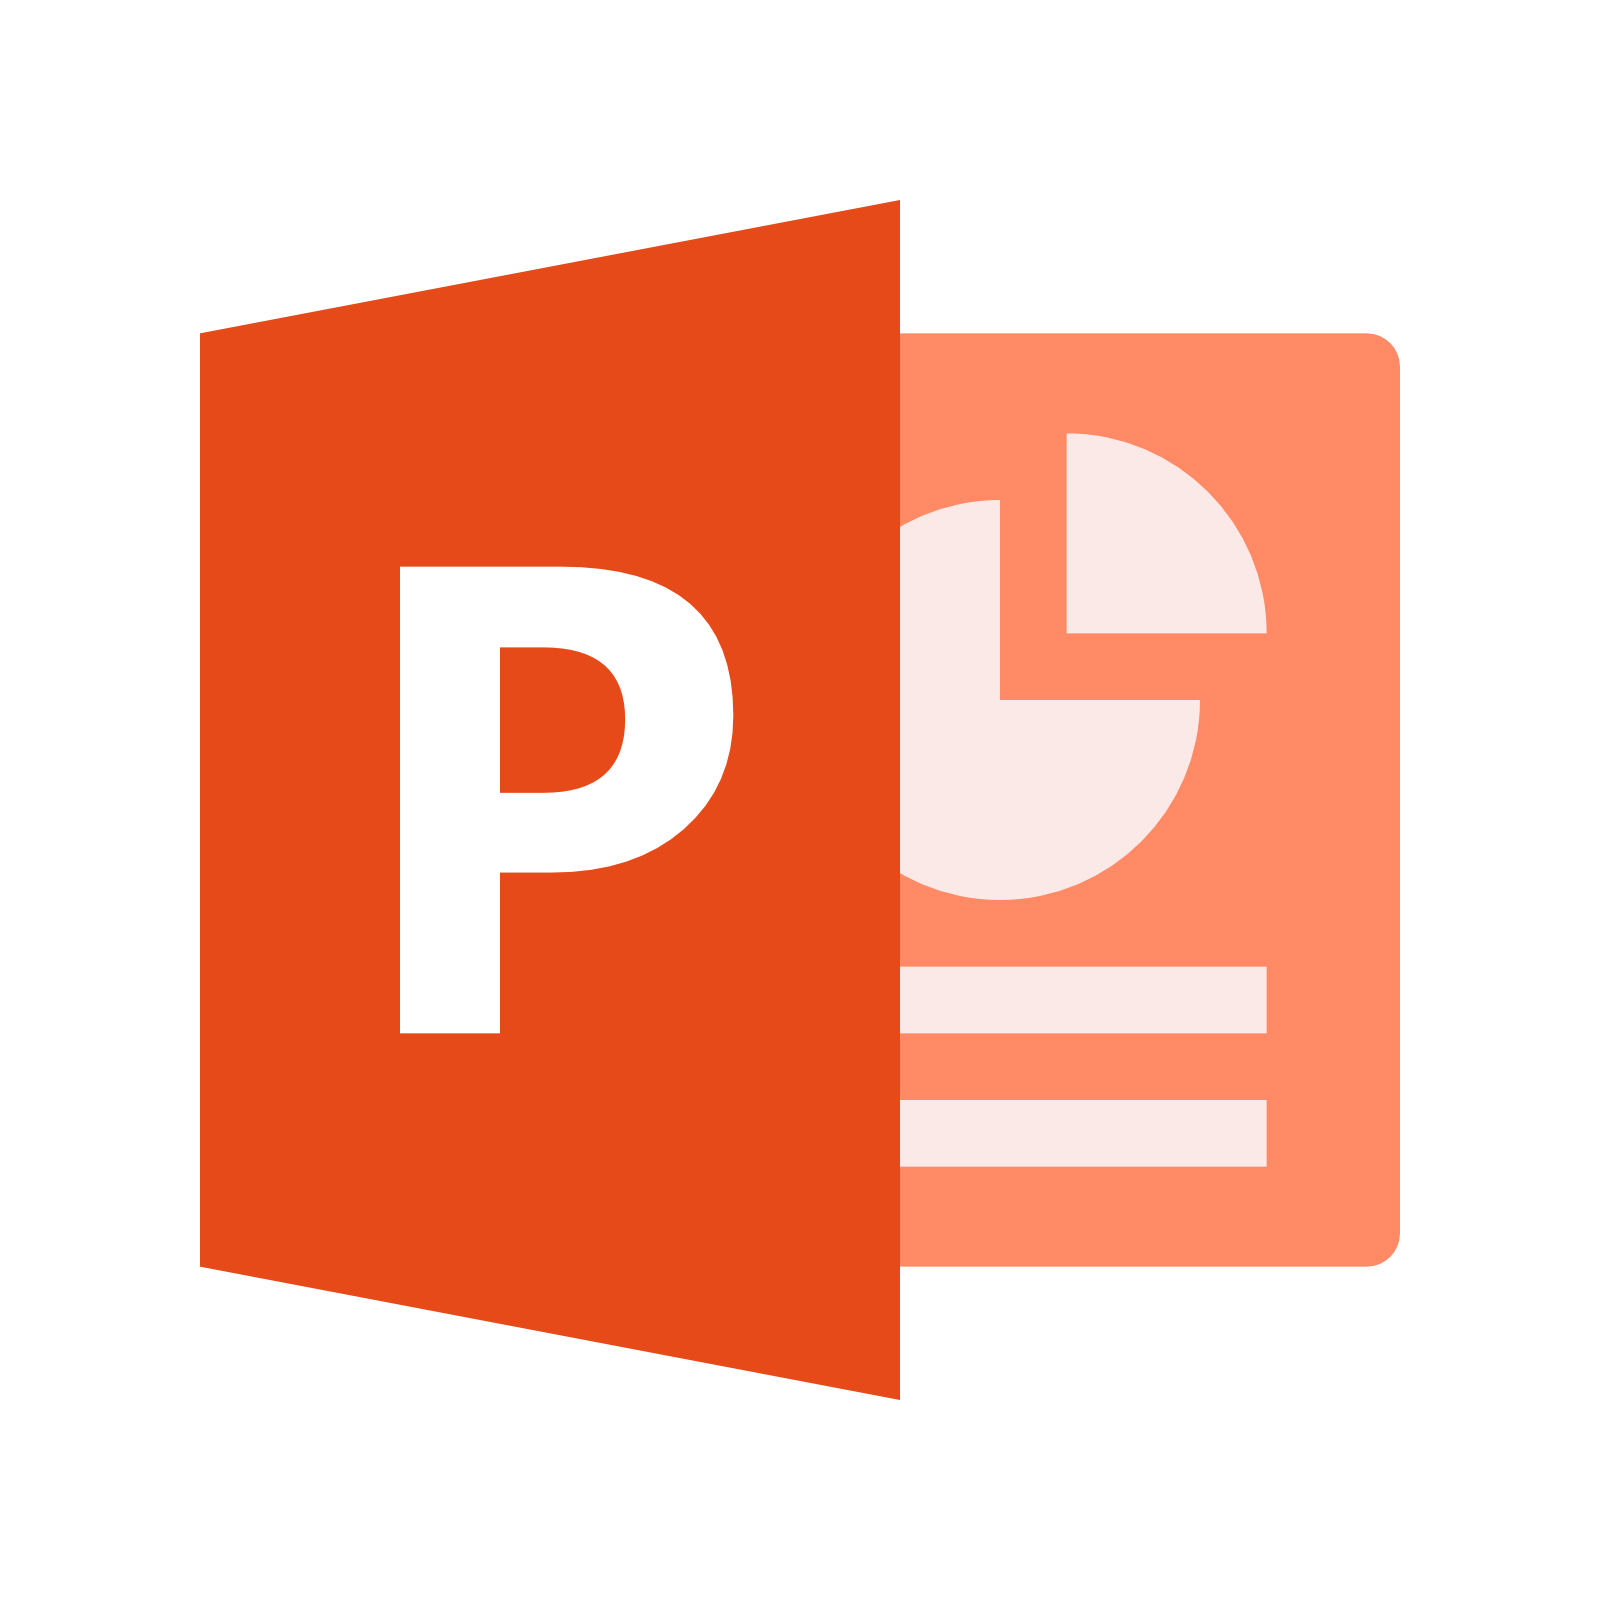 PNG Powerpoint Transparent Powerpoint.PNG Images. | PlusPNG